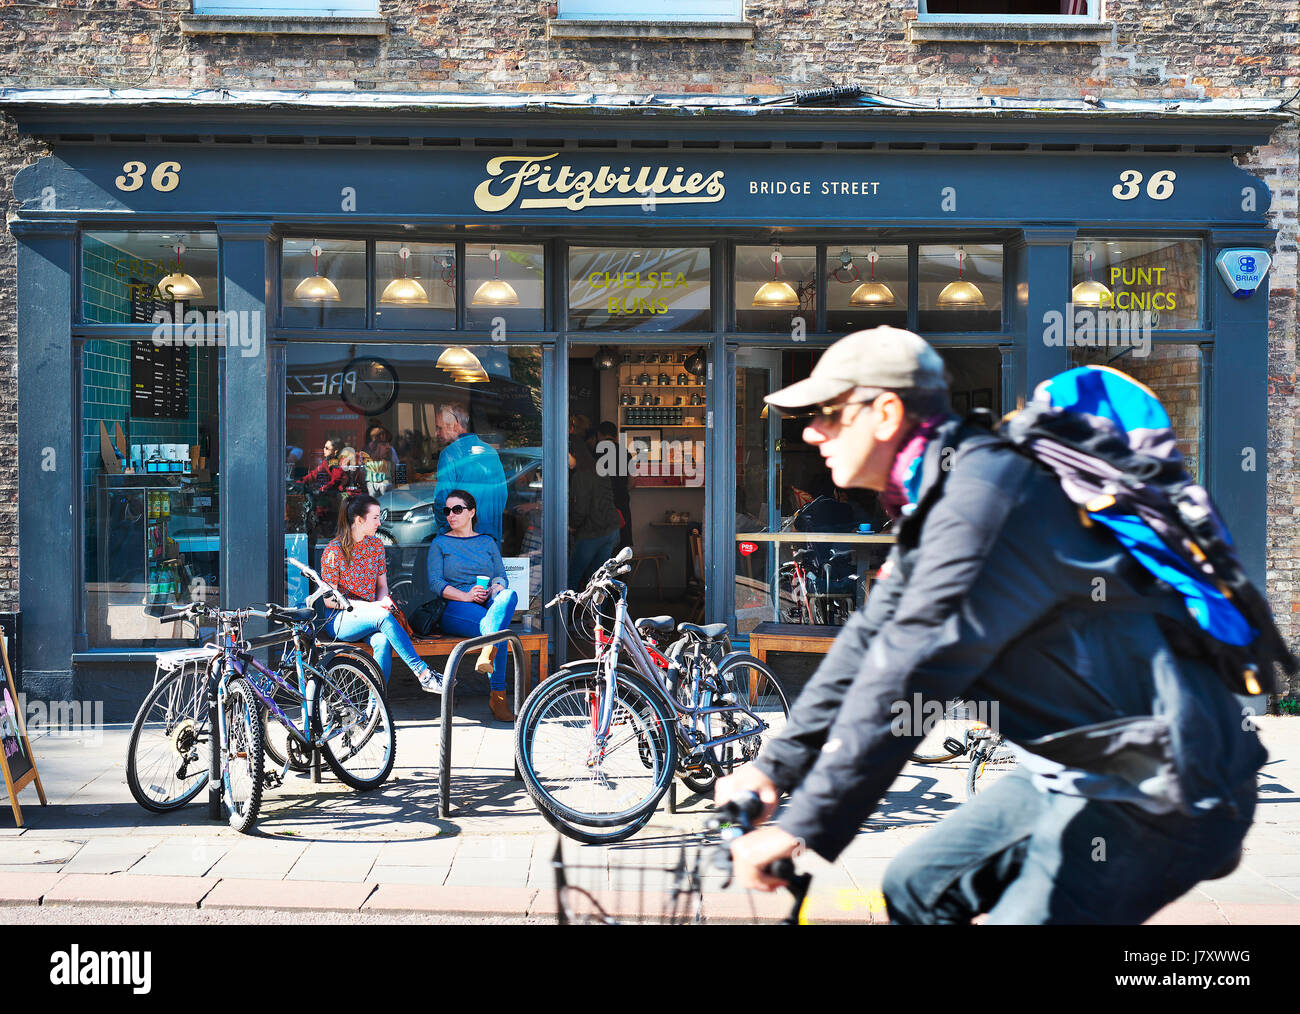 Sunday lifestyle in Cambridge, UK. Cyclist rides past a Cambridge institution of Fitzbilllies cafe in city while - Stock Image